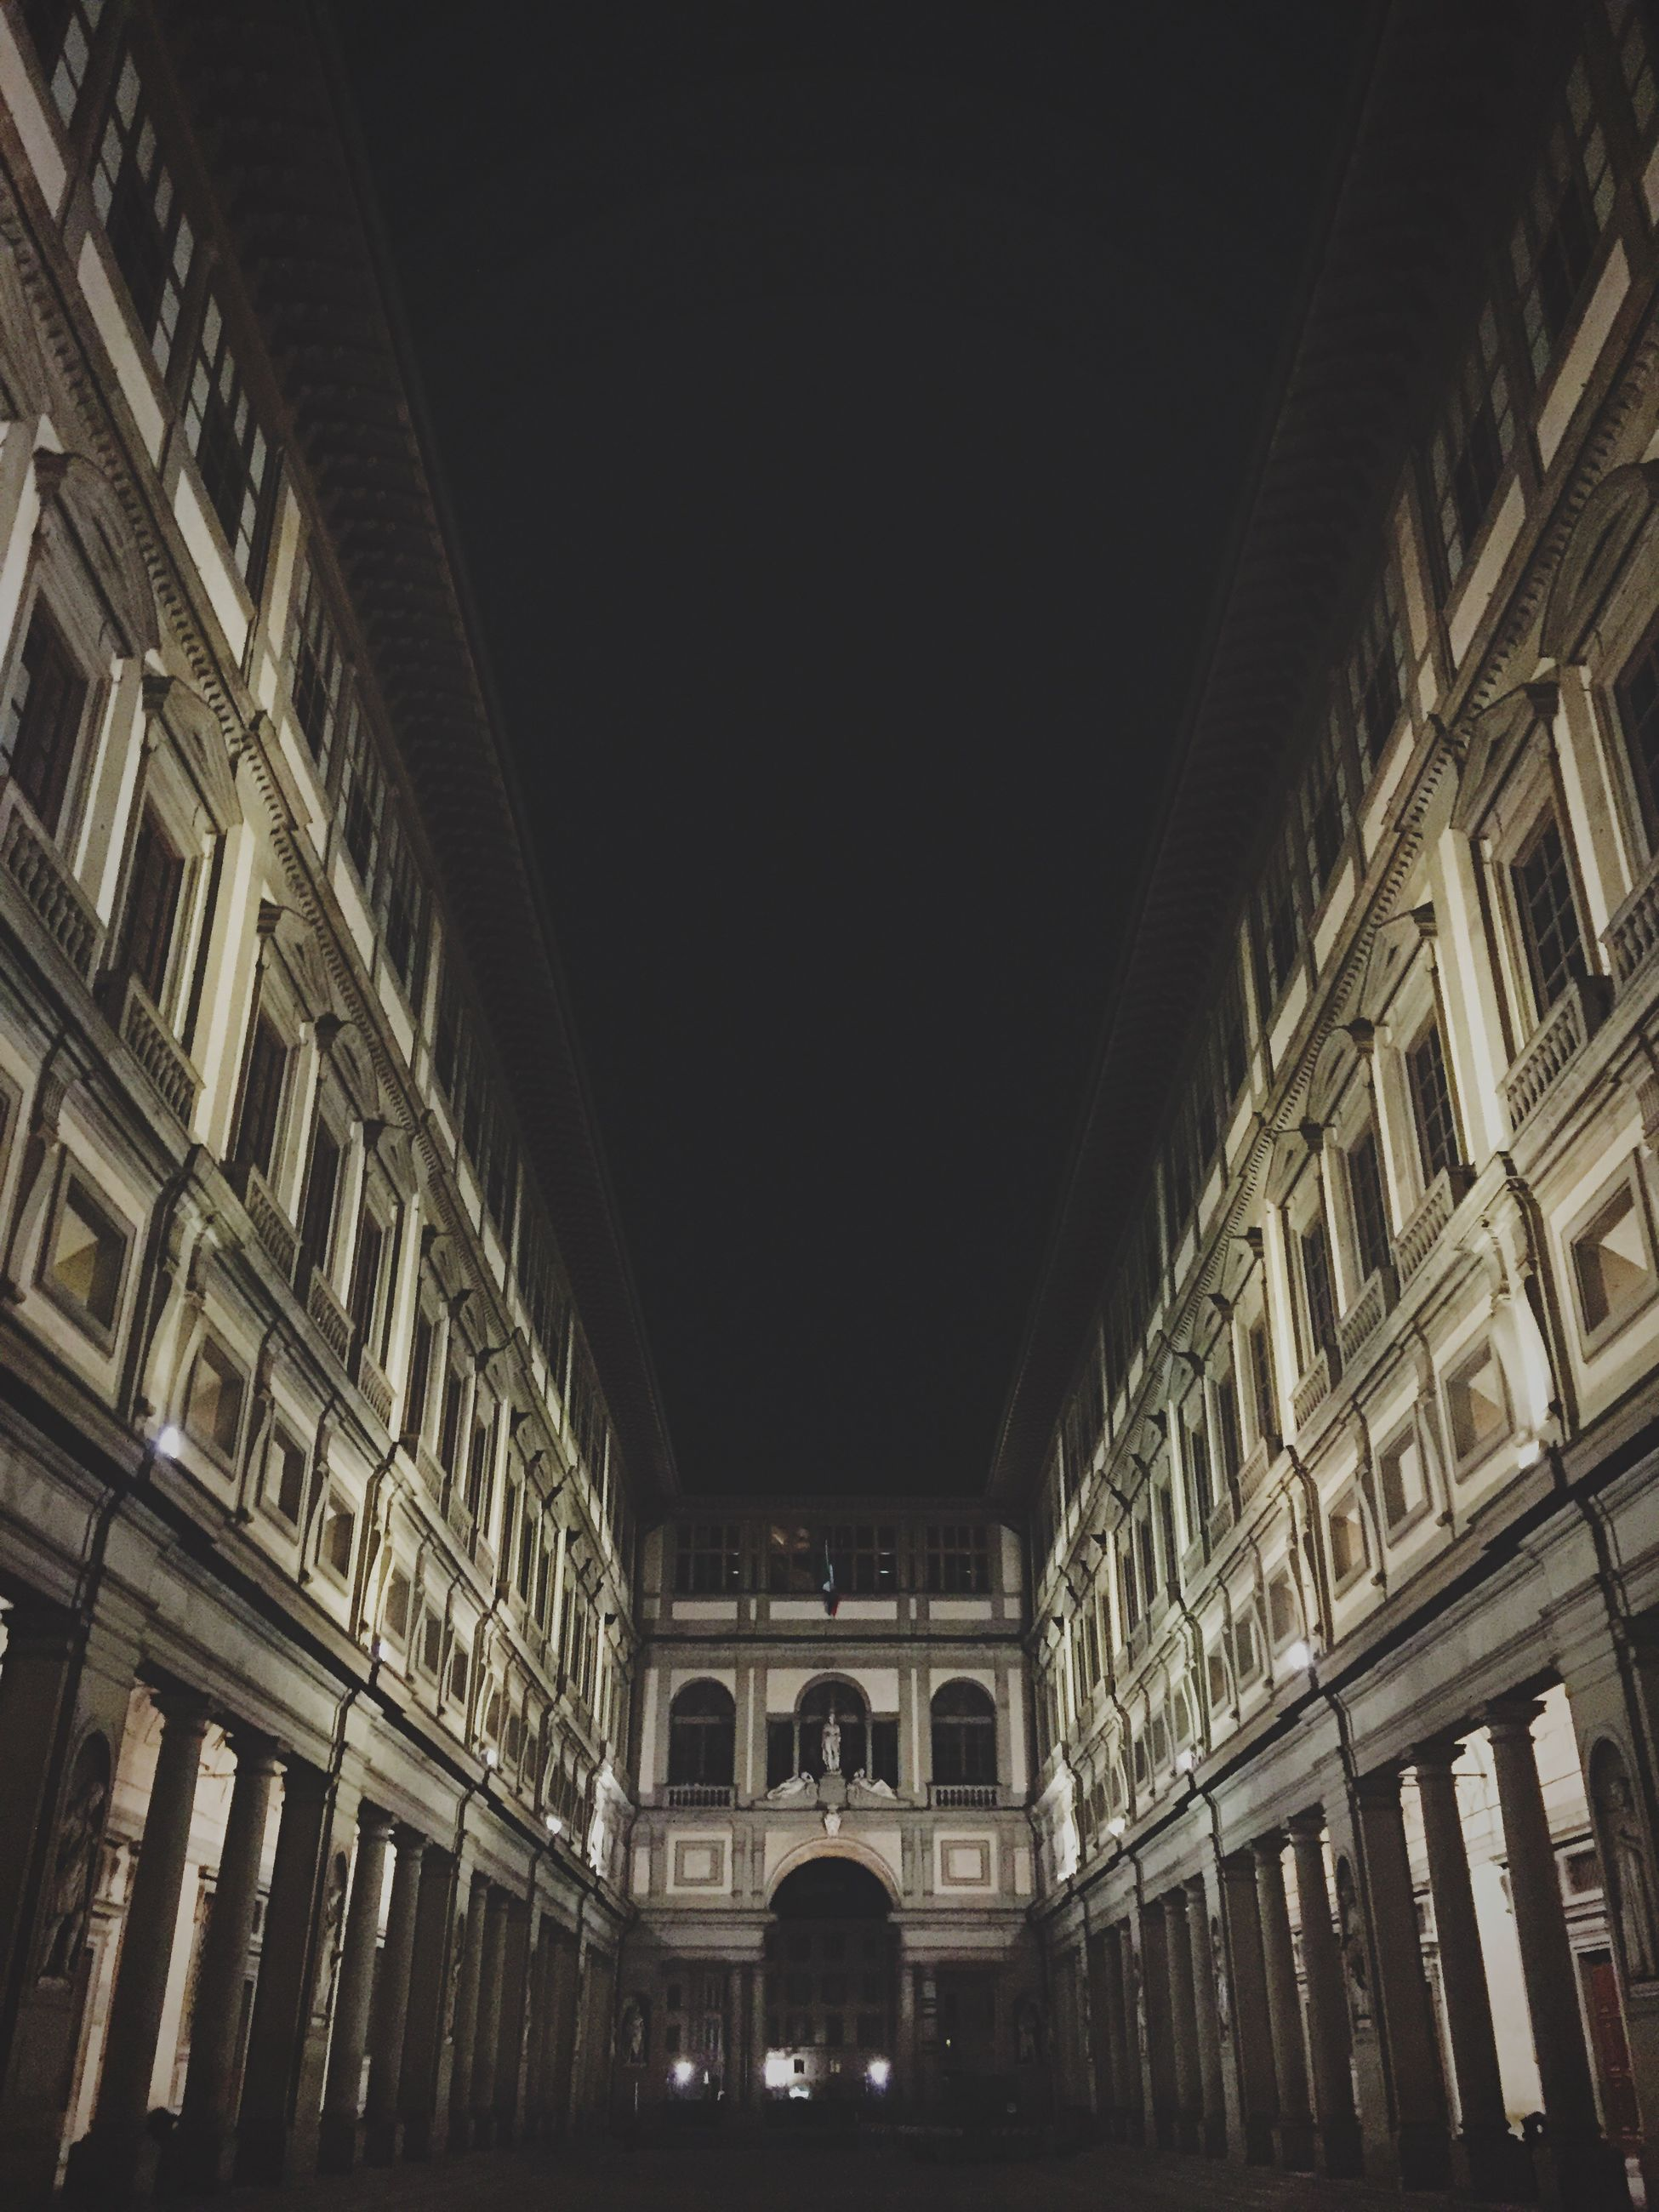 architecture, built structure, building exterior, city, illuminated, real people, indoors, large group of people, day, crowd, people